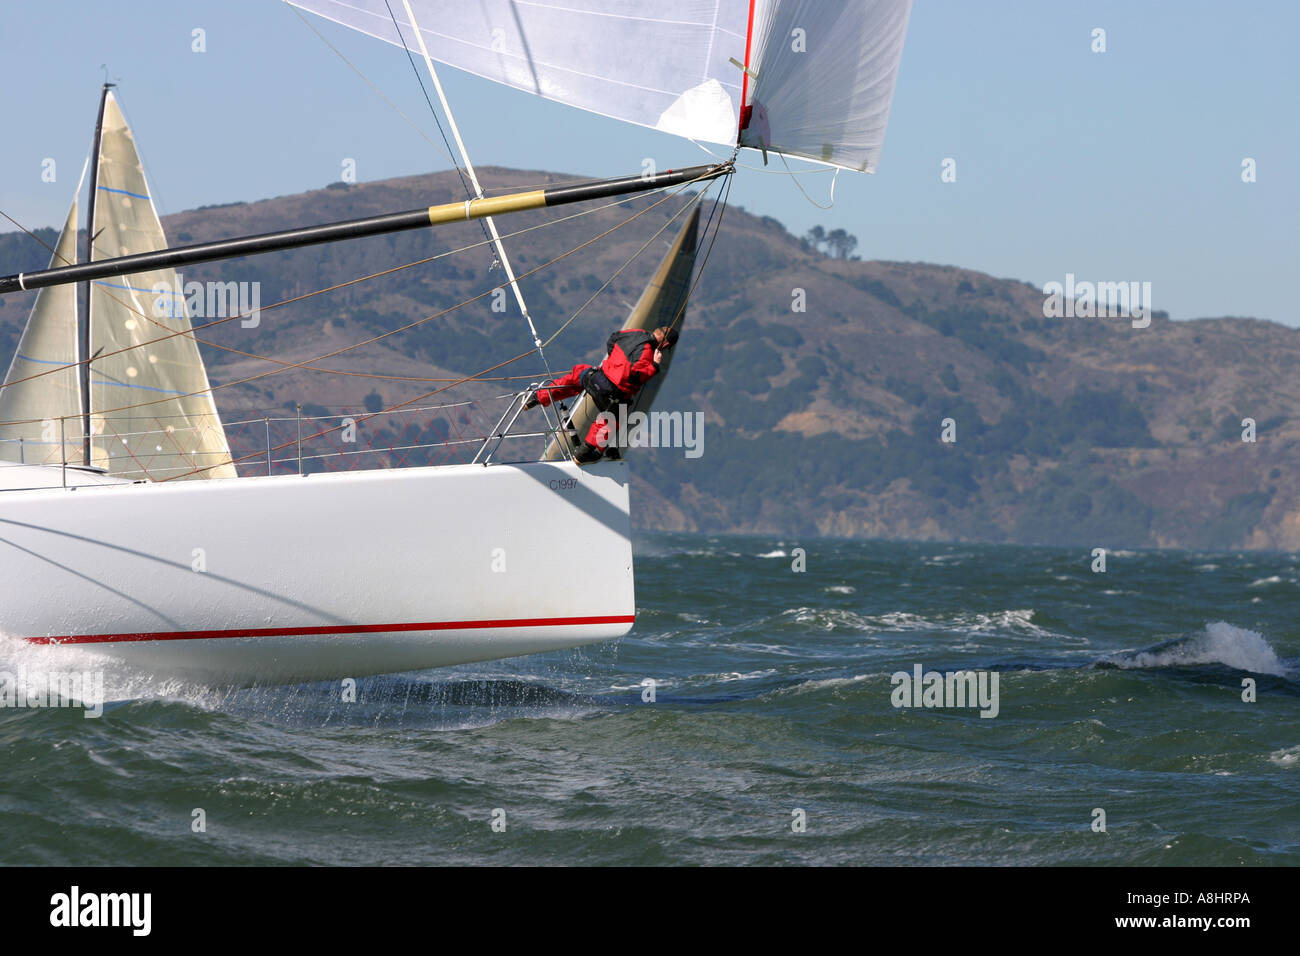 Bowman on Transpac 52 get ready to douse the chute San Fransisco Big Boat Series Presented by Rolex 2004 Stock Photo